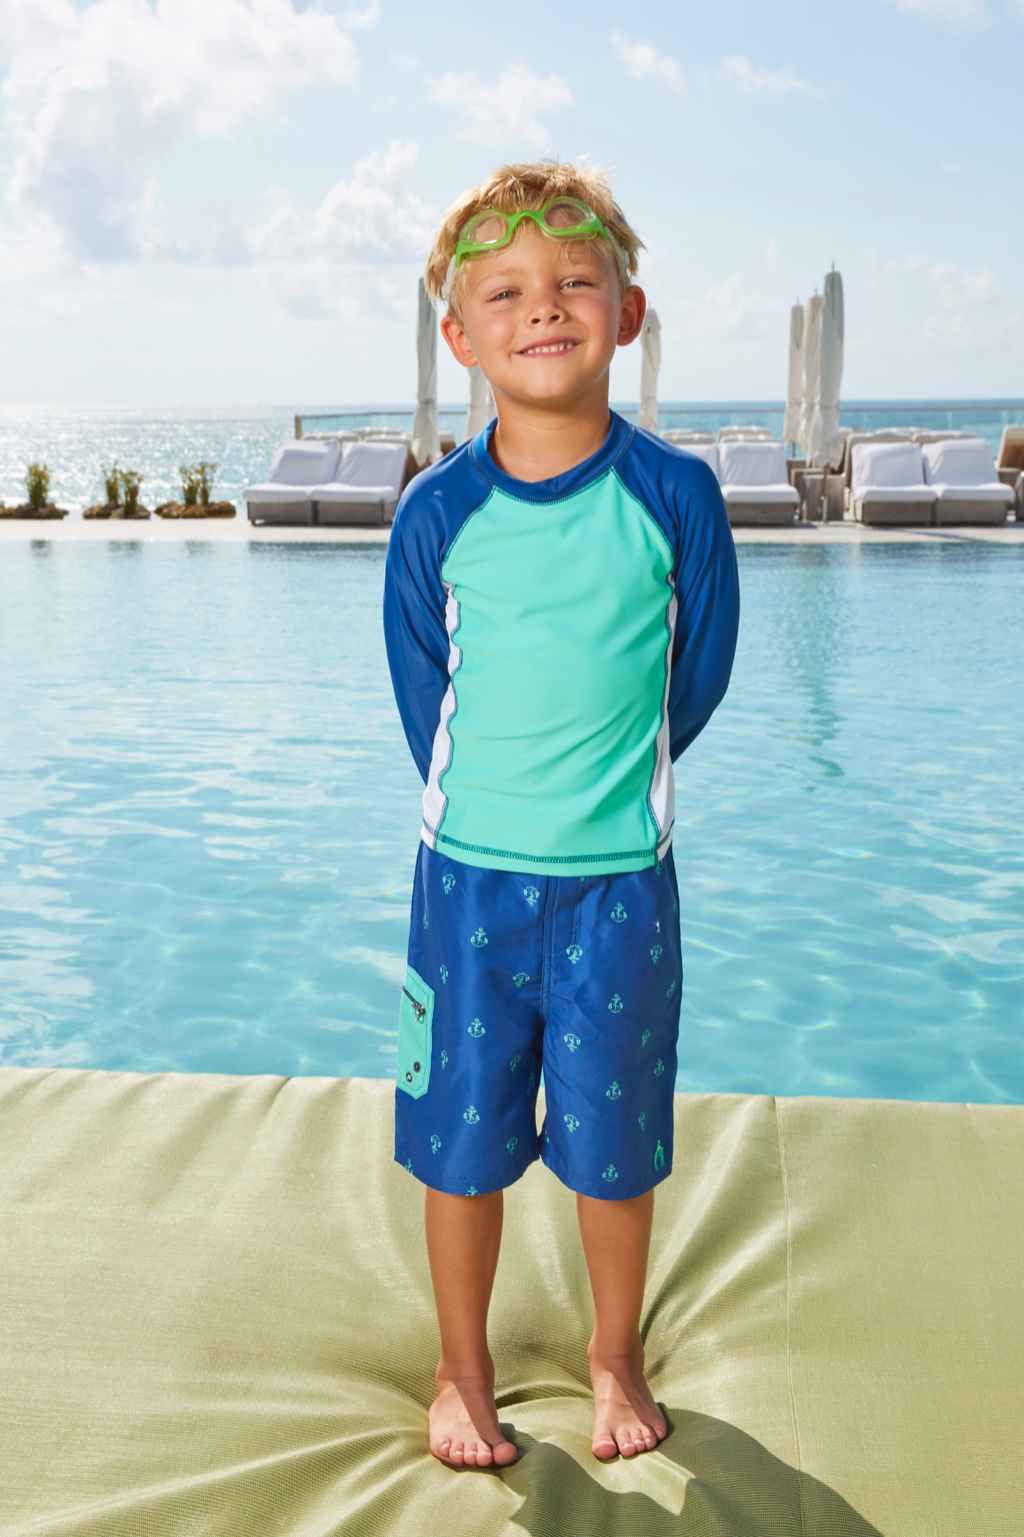 Little-Boys-Rashguard-Sets_Cabana-Life_Green-Anchors-Rashguard-Set-1.jpg